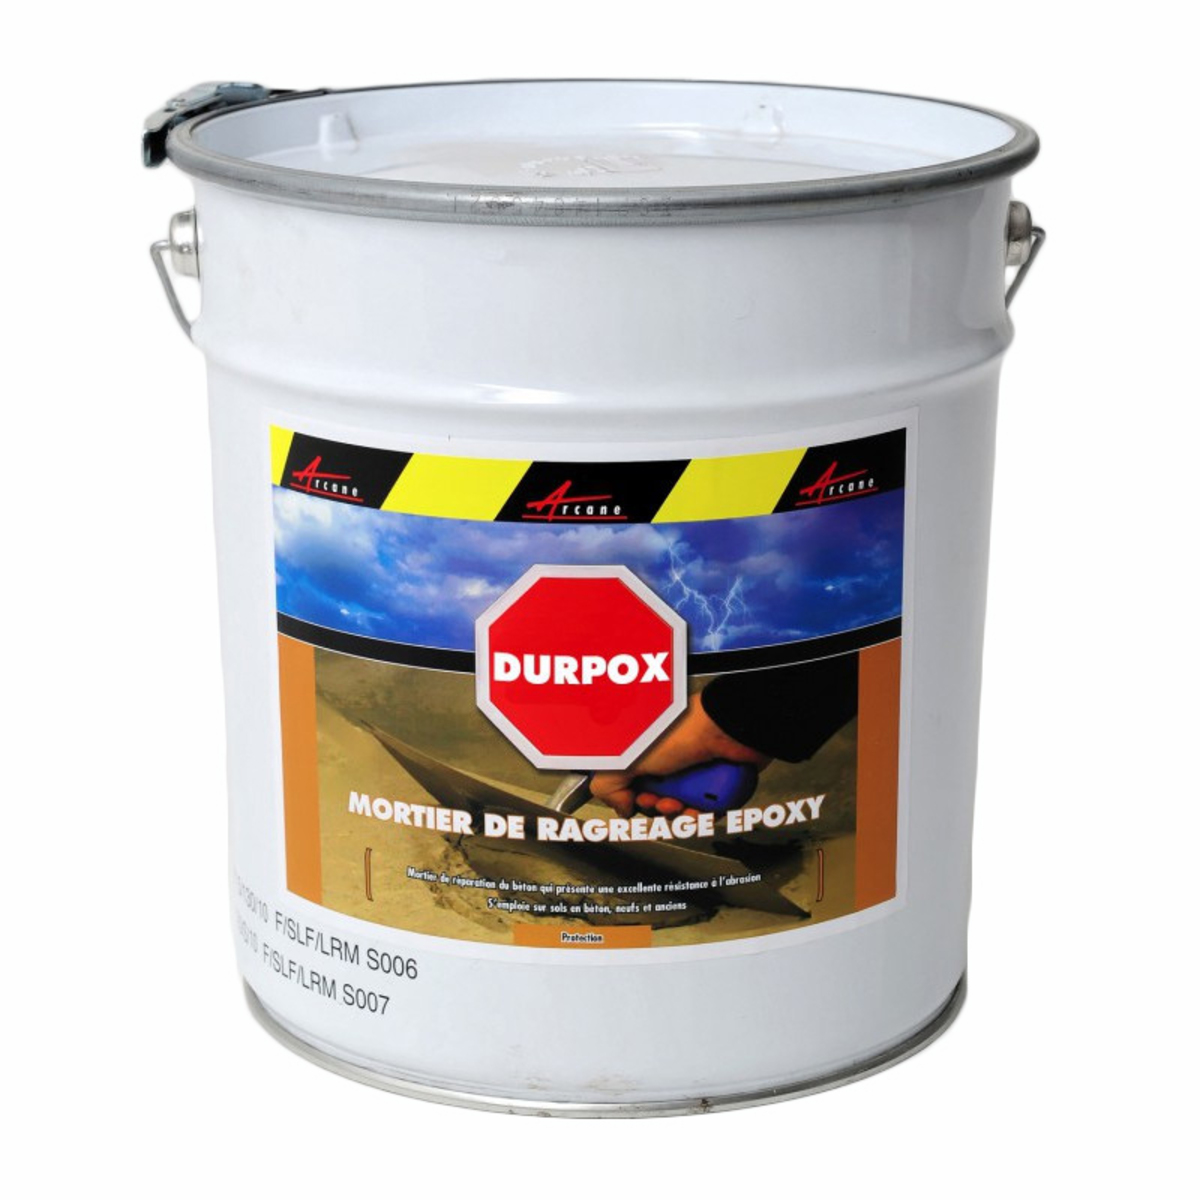 Mortier epoxy de réparation express - DURPOX